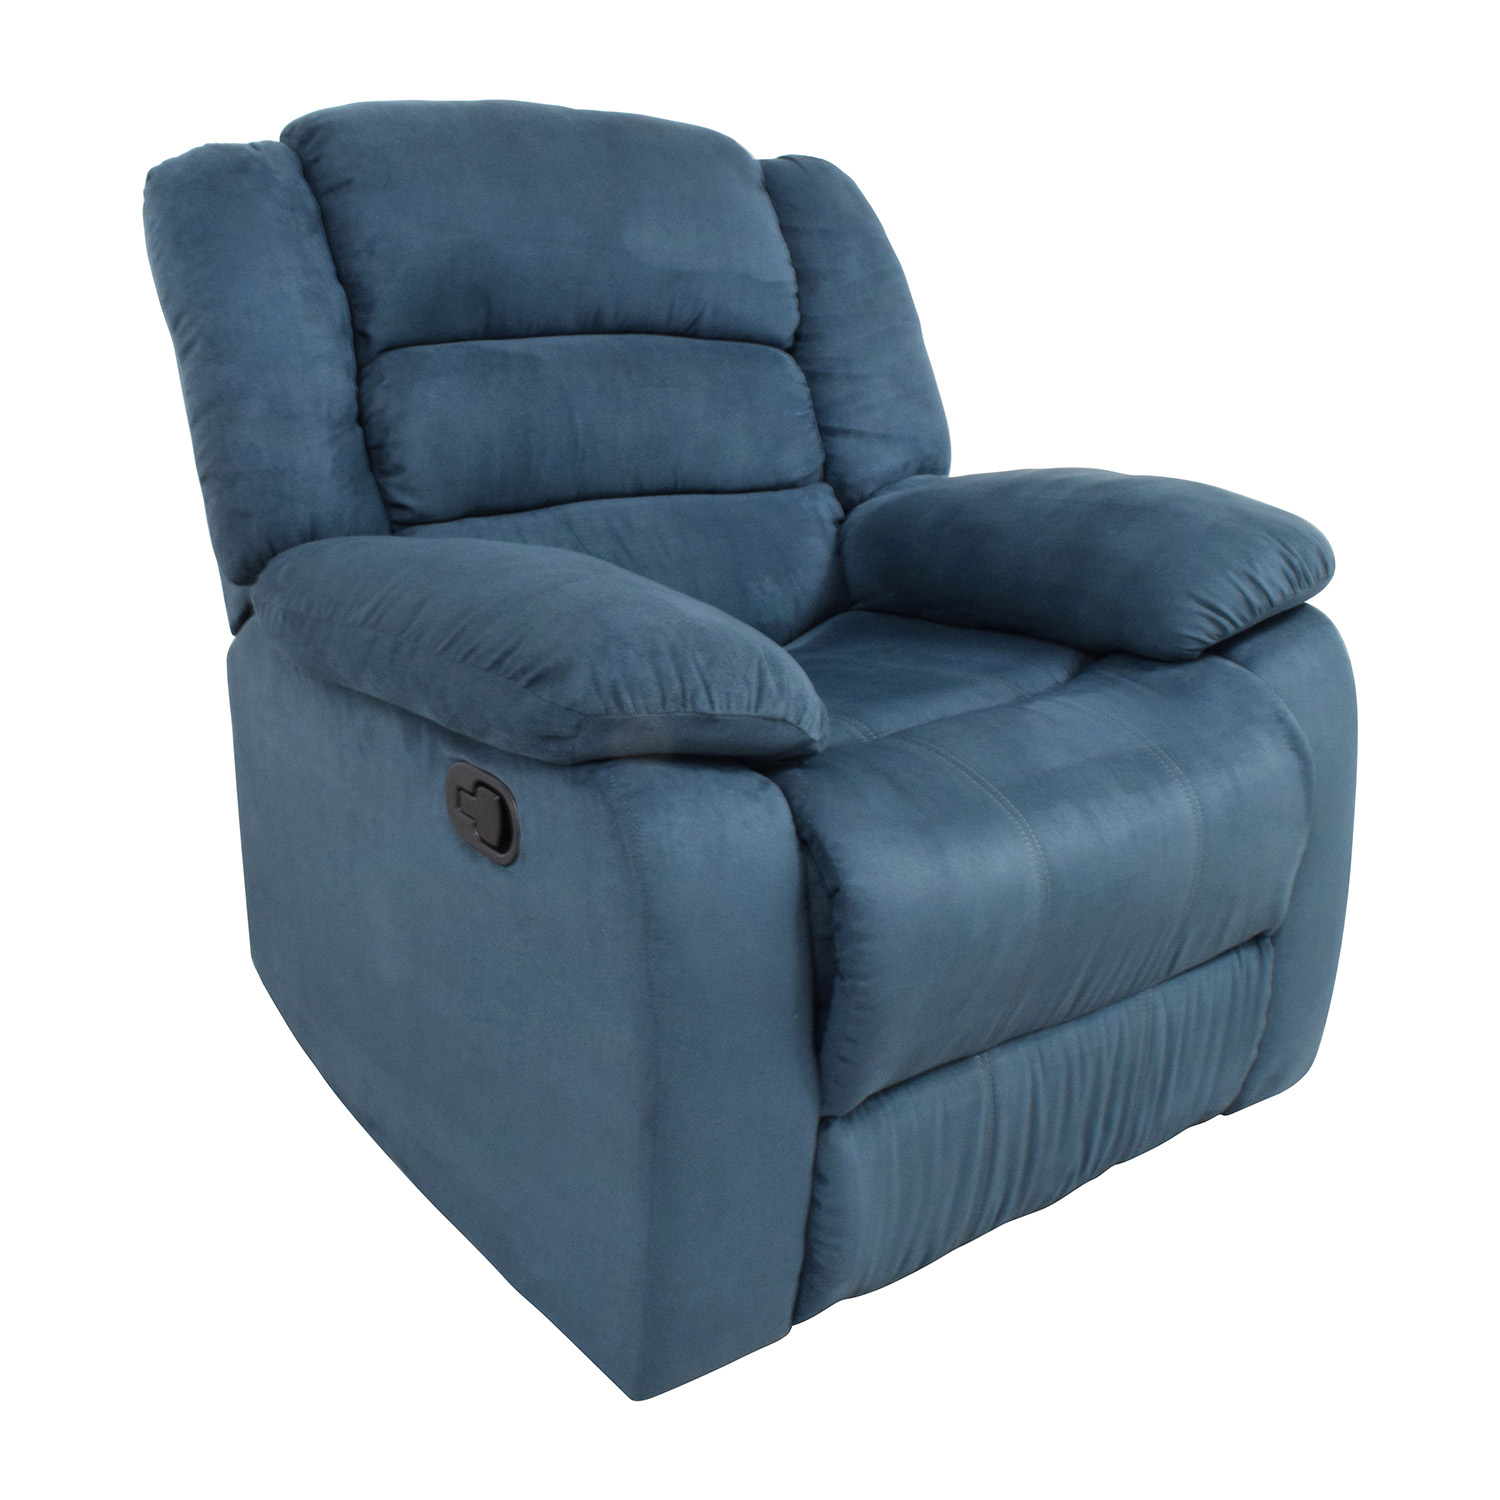 shop Nathaniel Home Nathaniel Home Express Addison Contemporary Recliner online